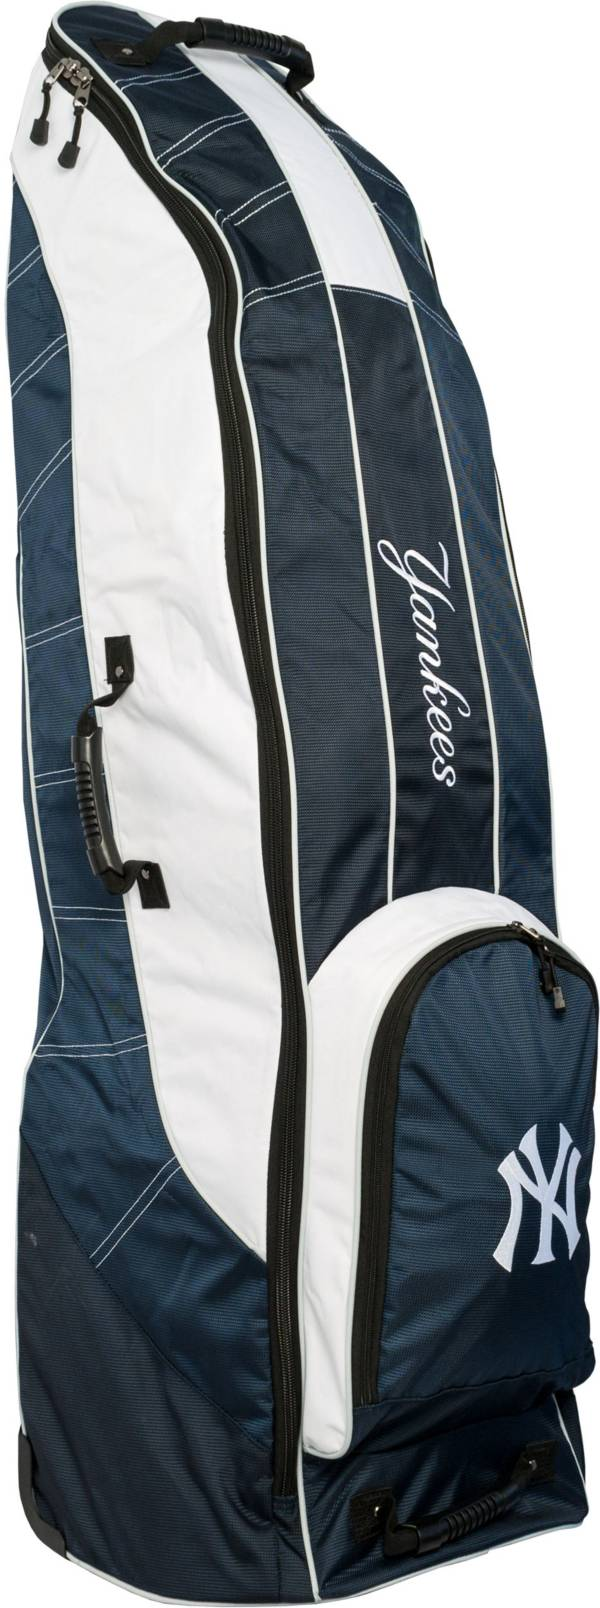 Team Golf New York Yankees Travel Cover product image